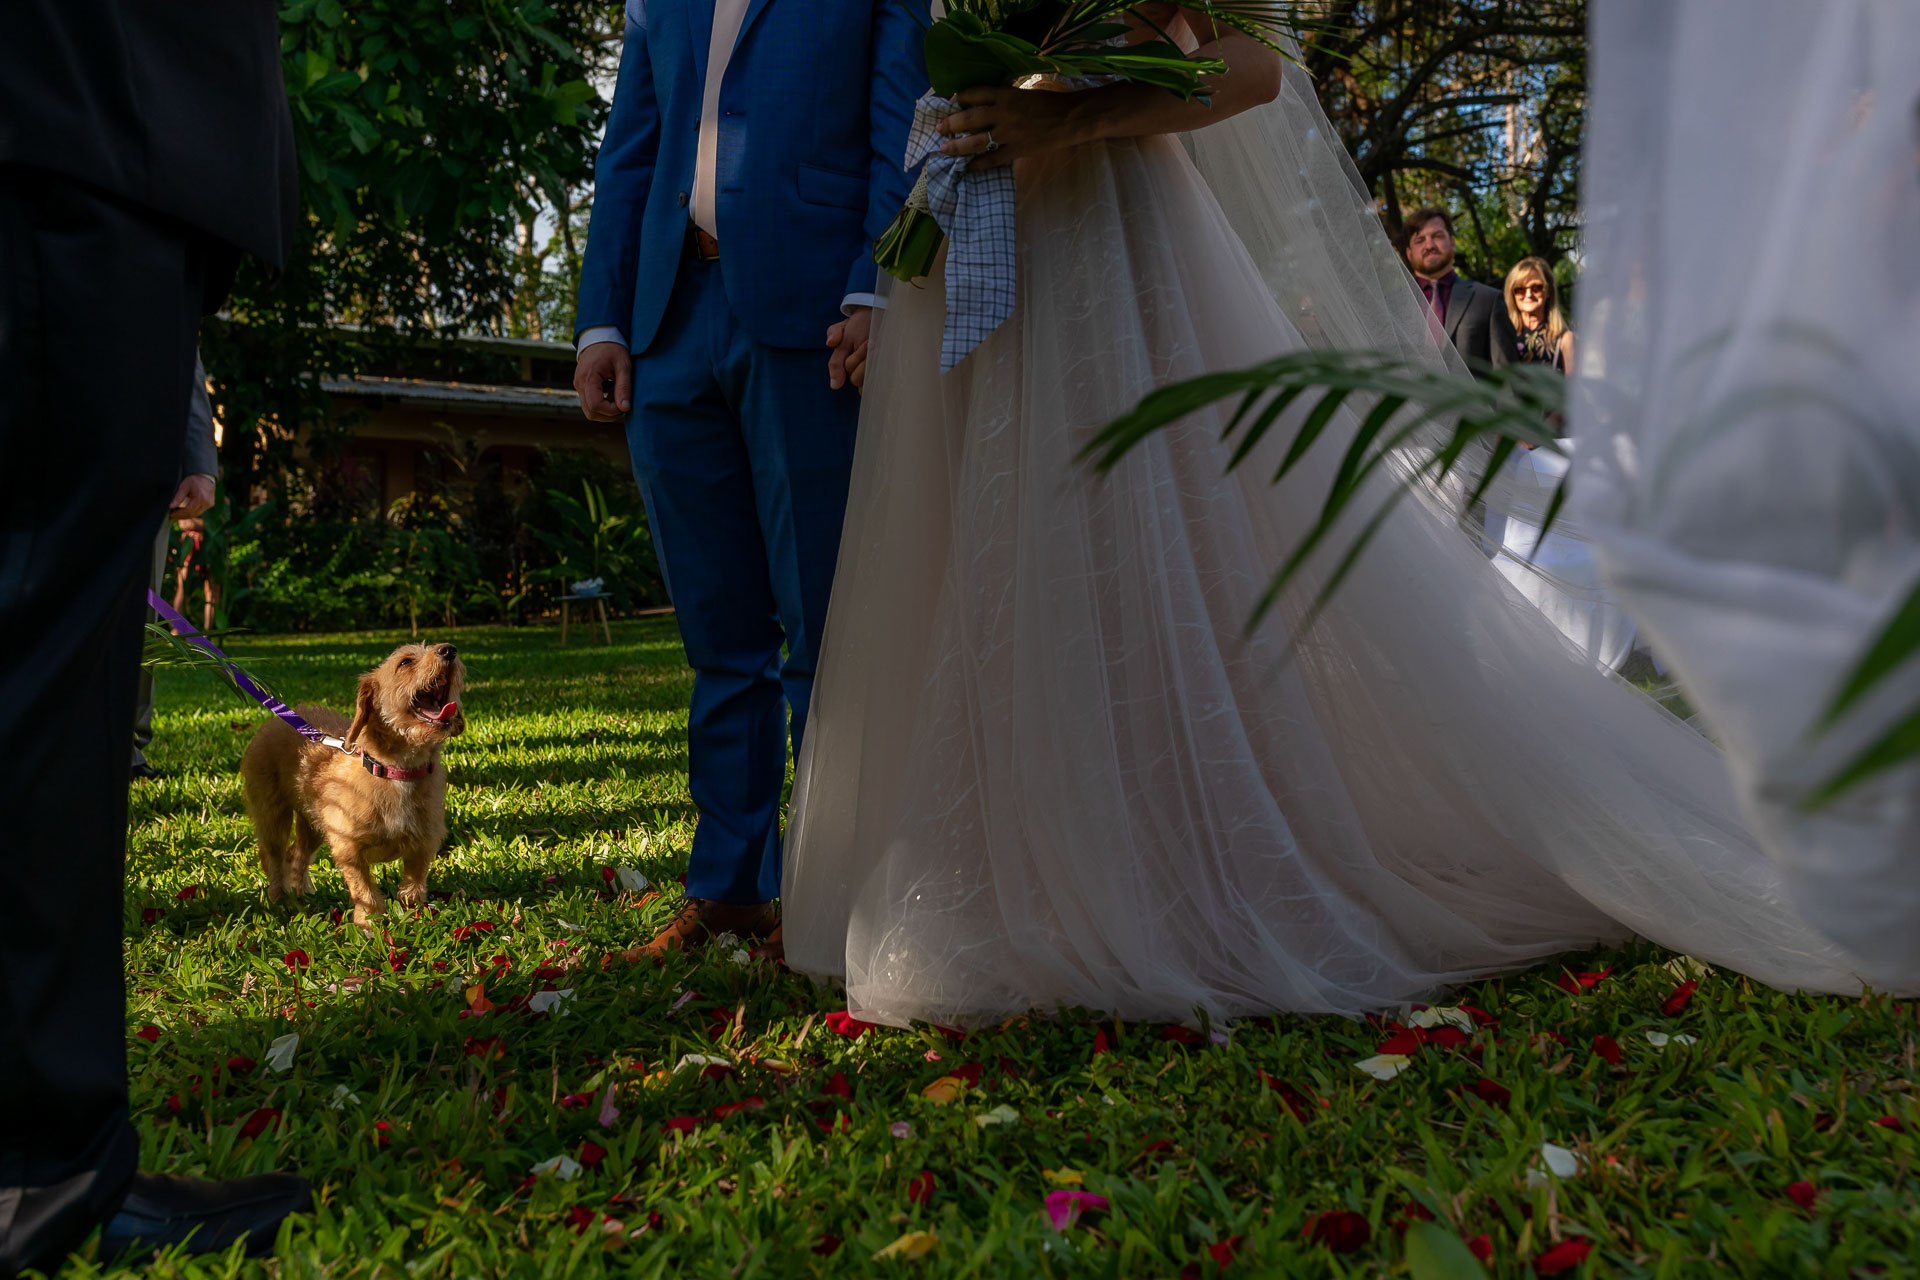 Costa Rica Outdoor Wedding Ceremony Photography   the couple asked the dog to be in the ceremony